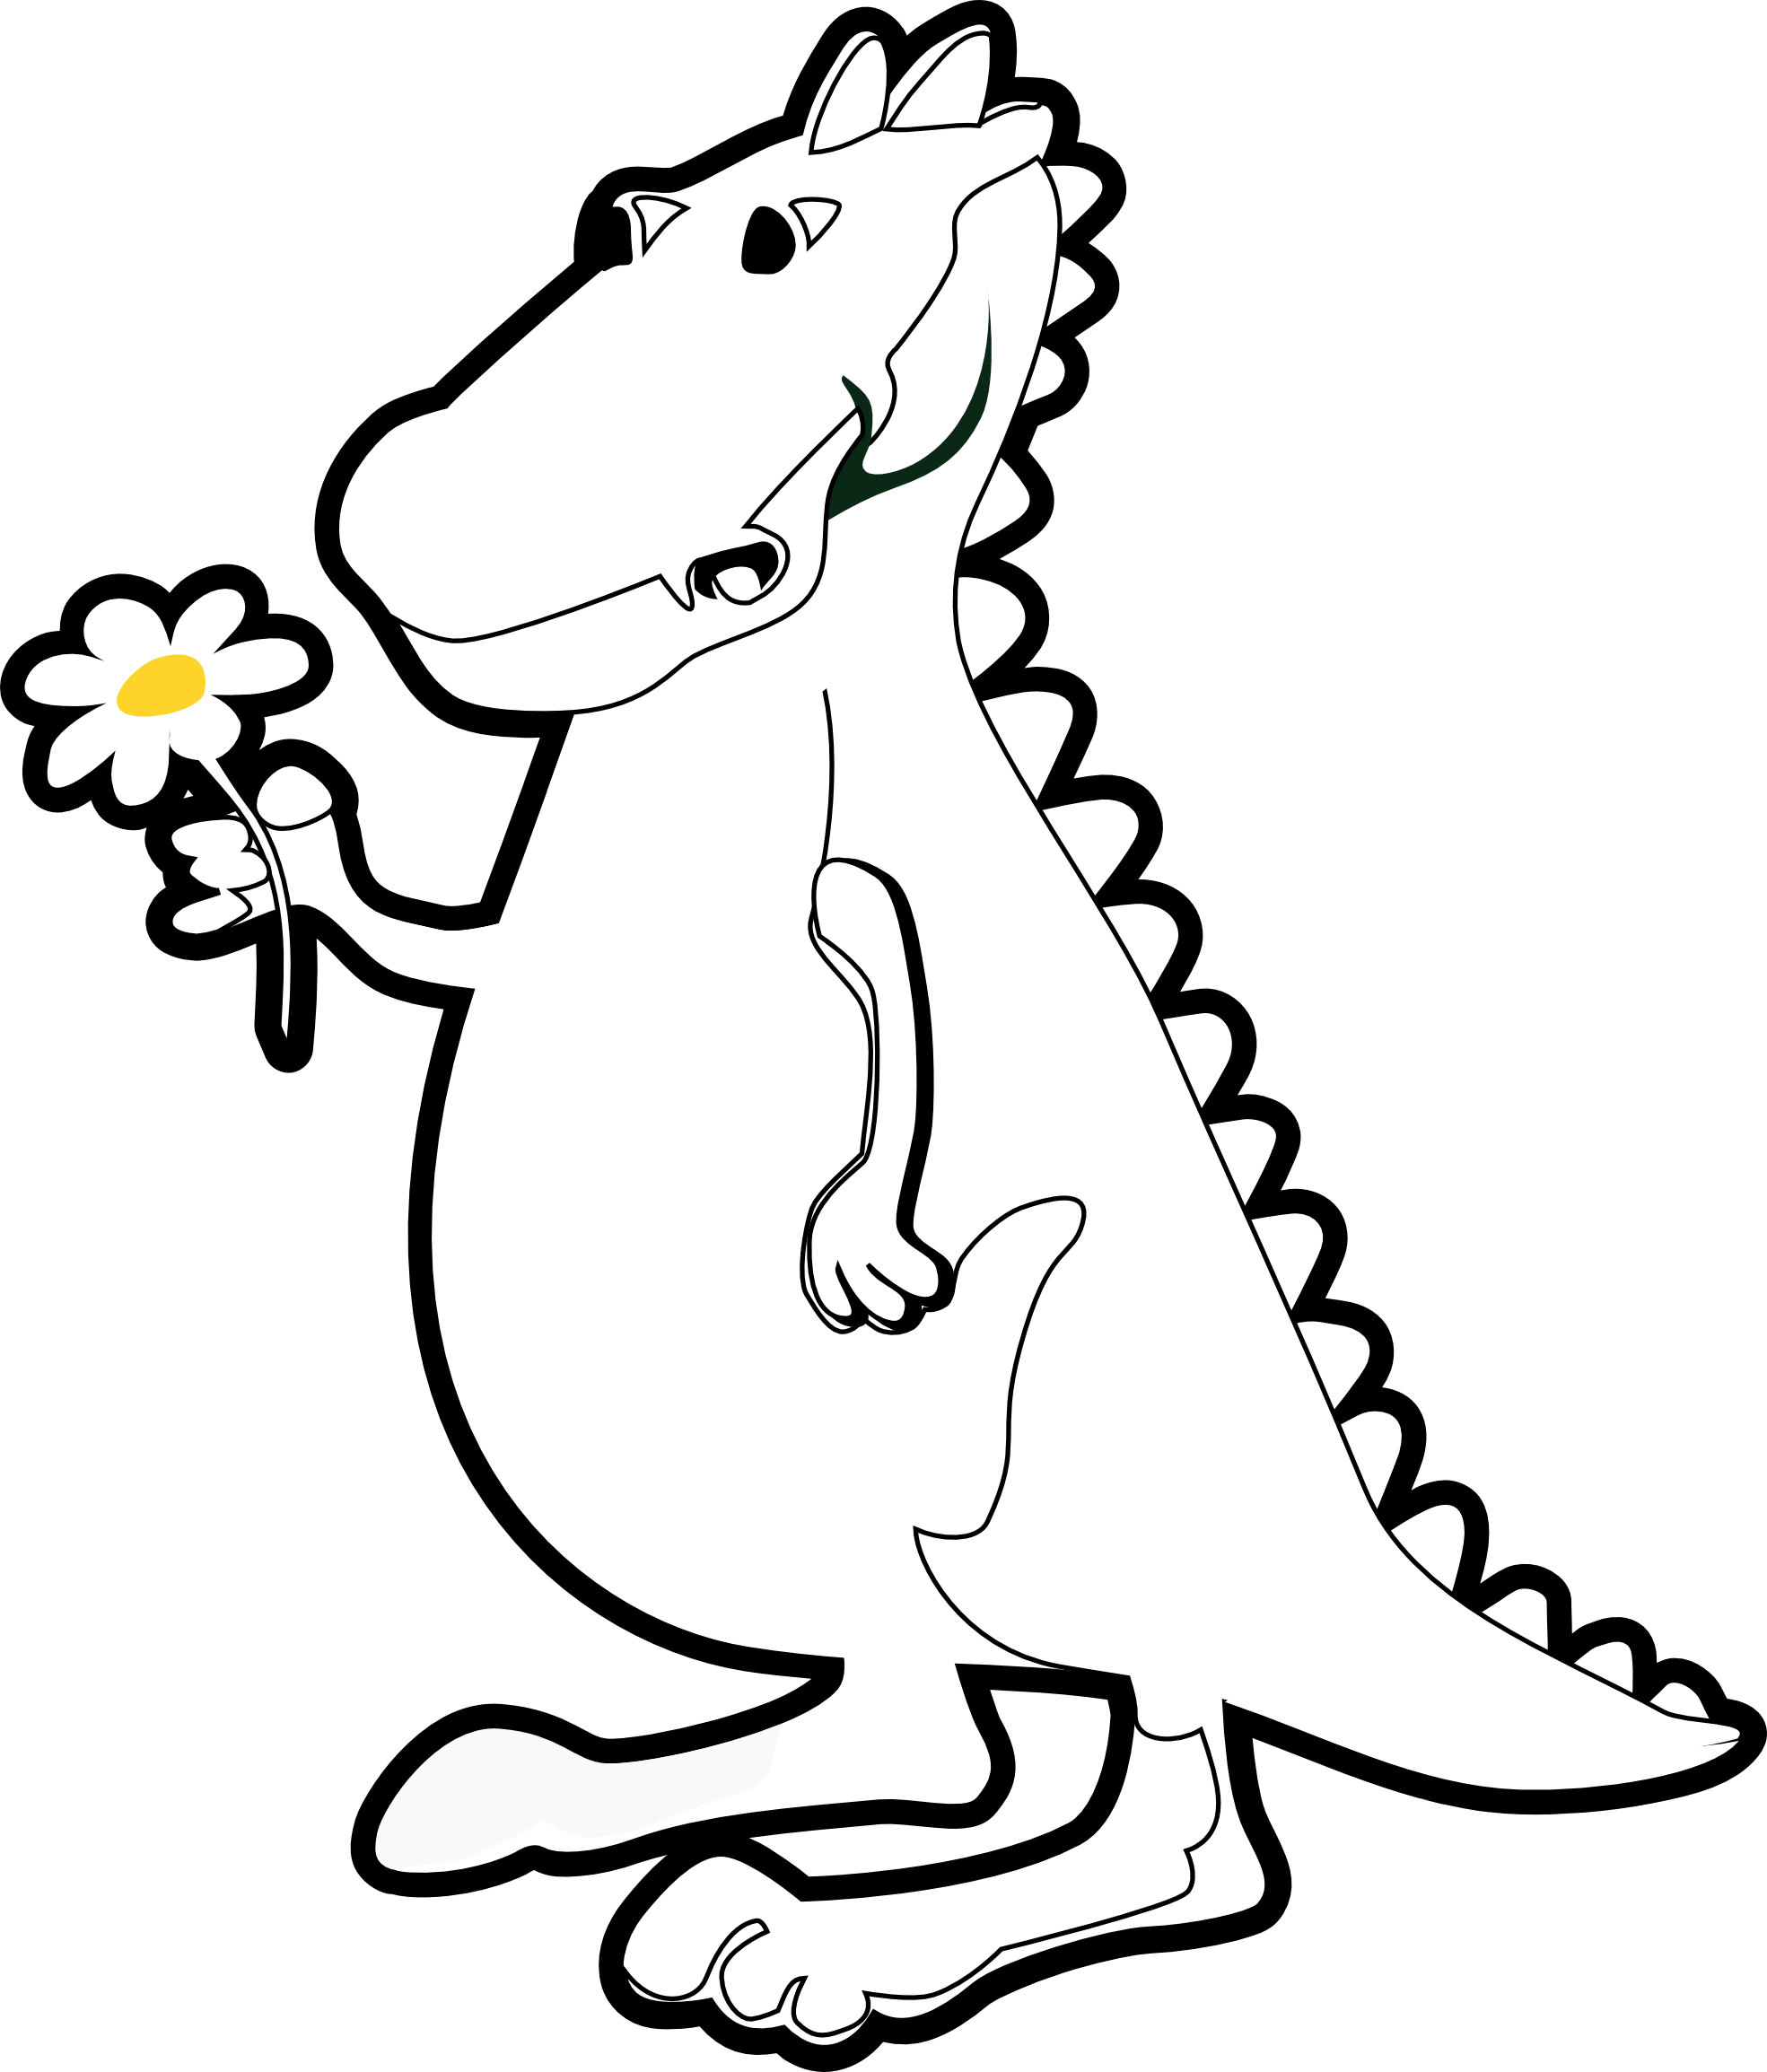 trex-clipart-black-and-white-dragon_with_flower_black_white_line_art ...